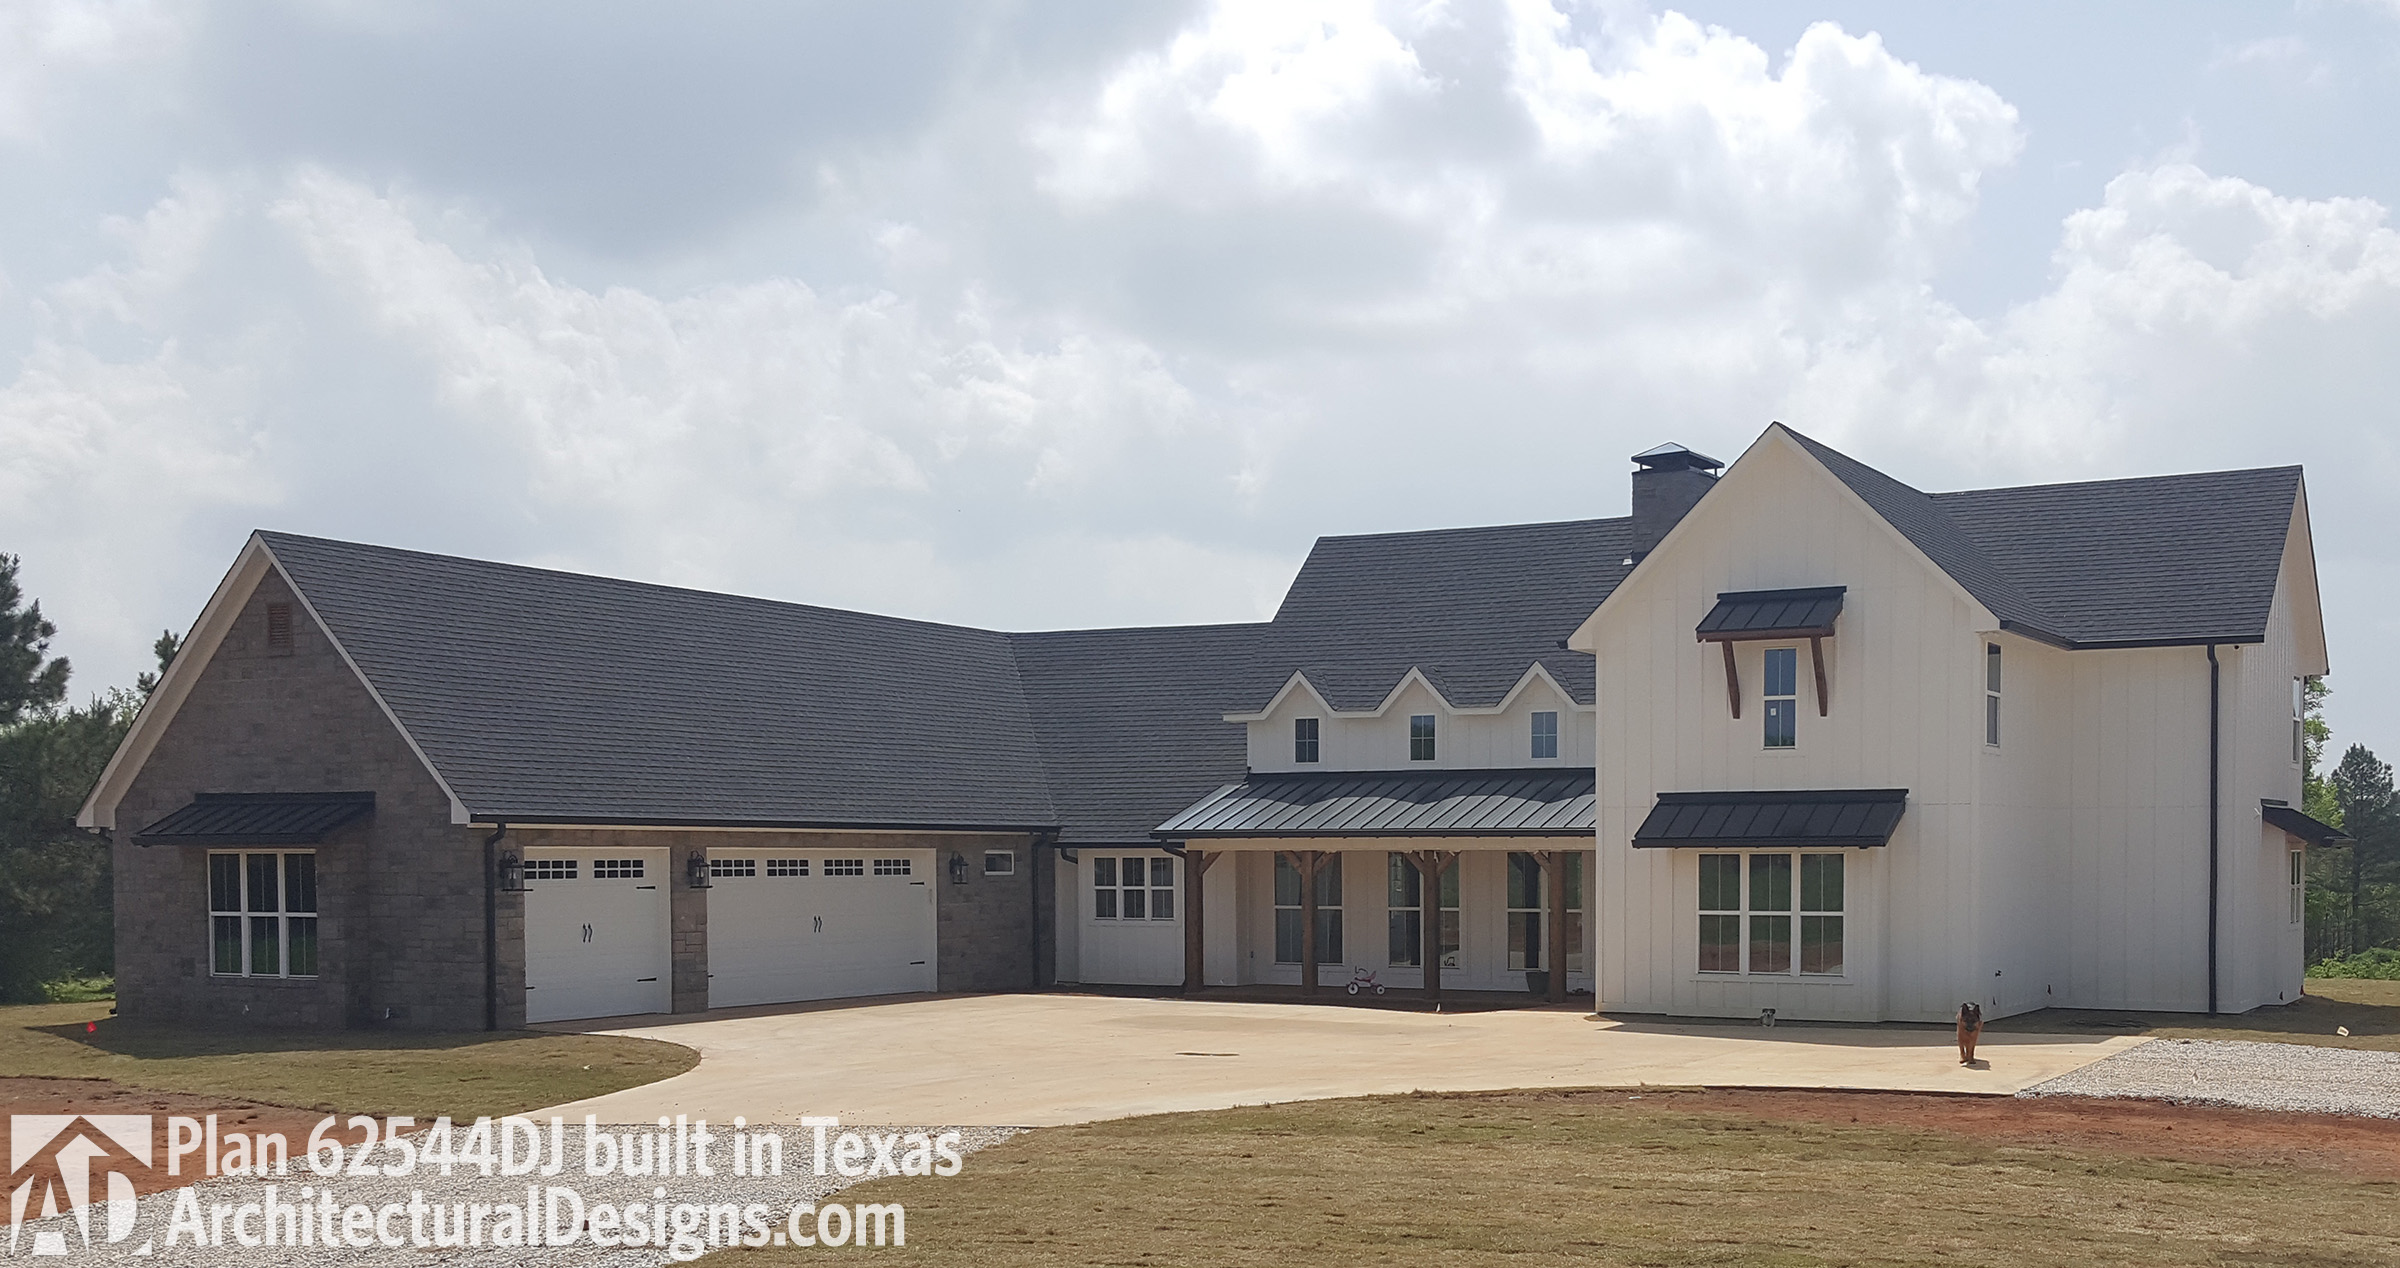 Modern Farmhouse Plans house plan 62544dj built in texas